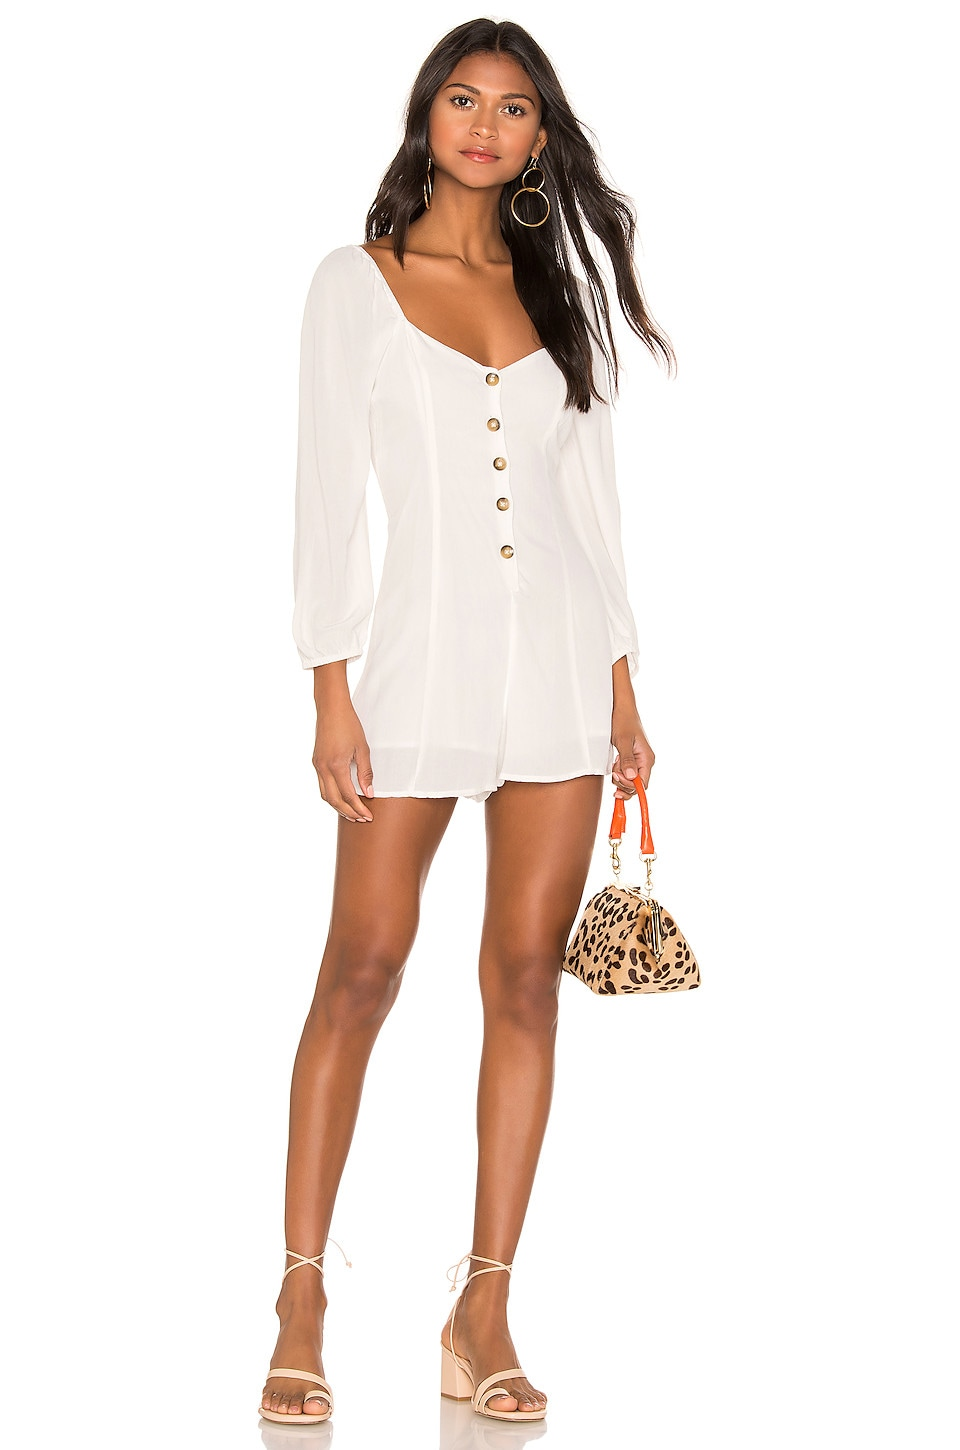 AMUSE SOCIETY Liliana Romper in Casa Blanca